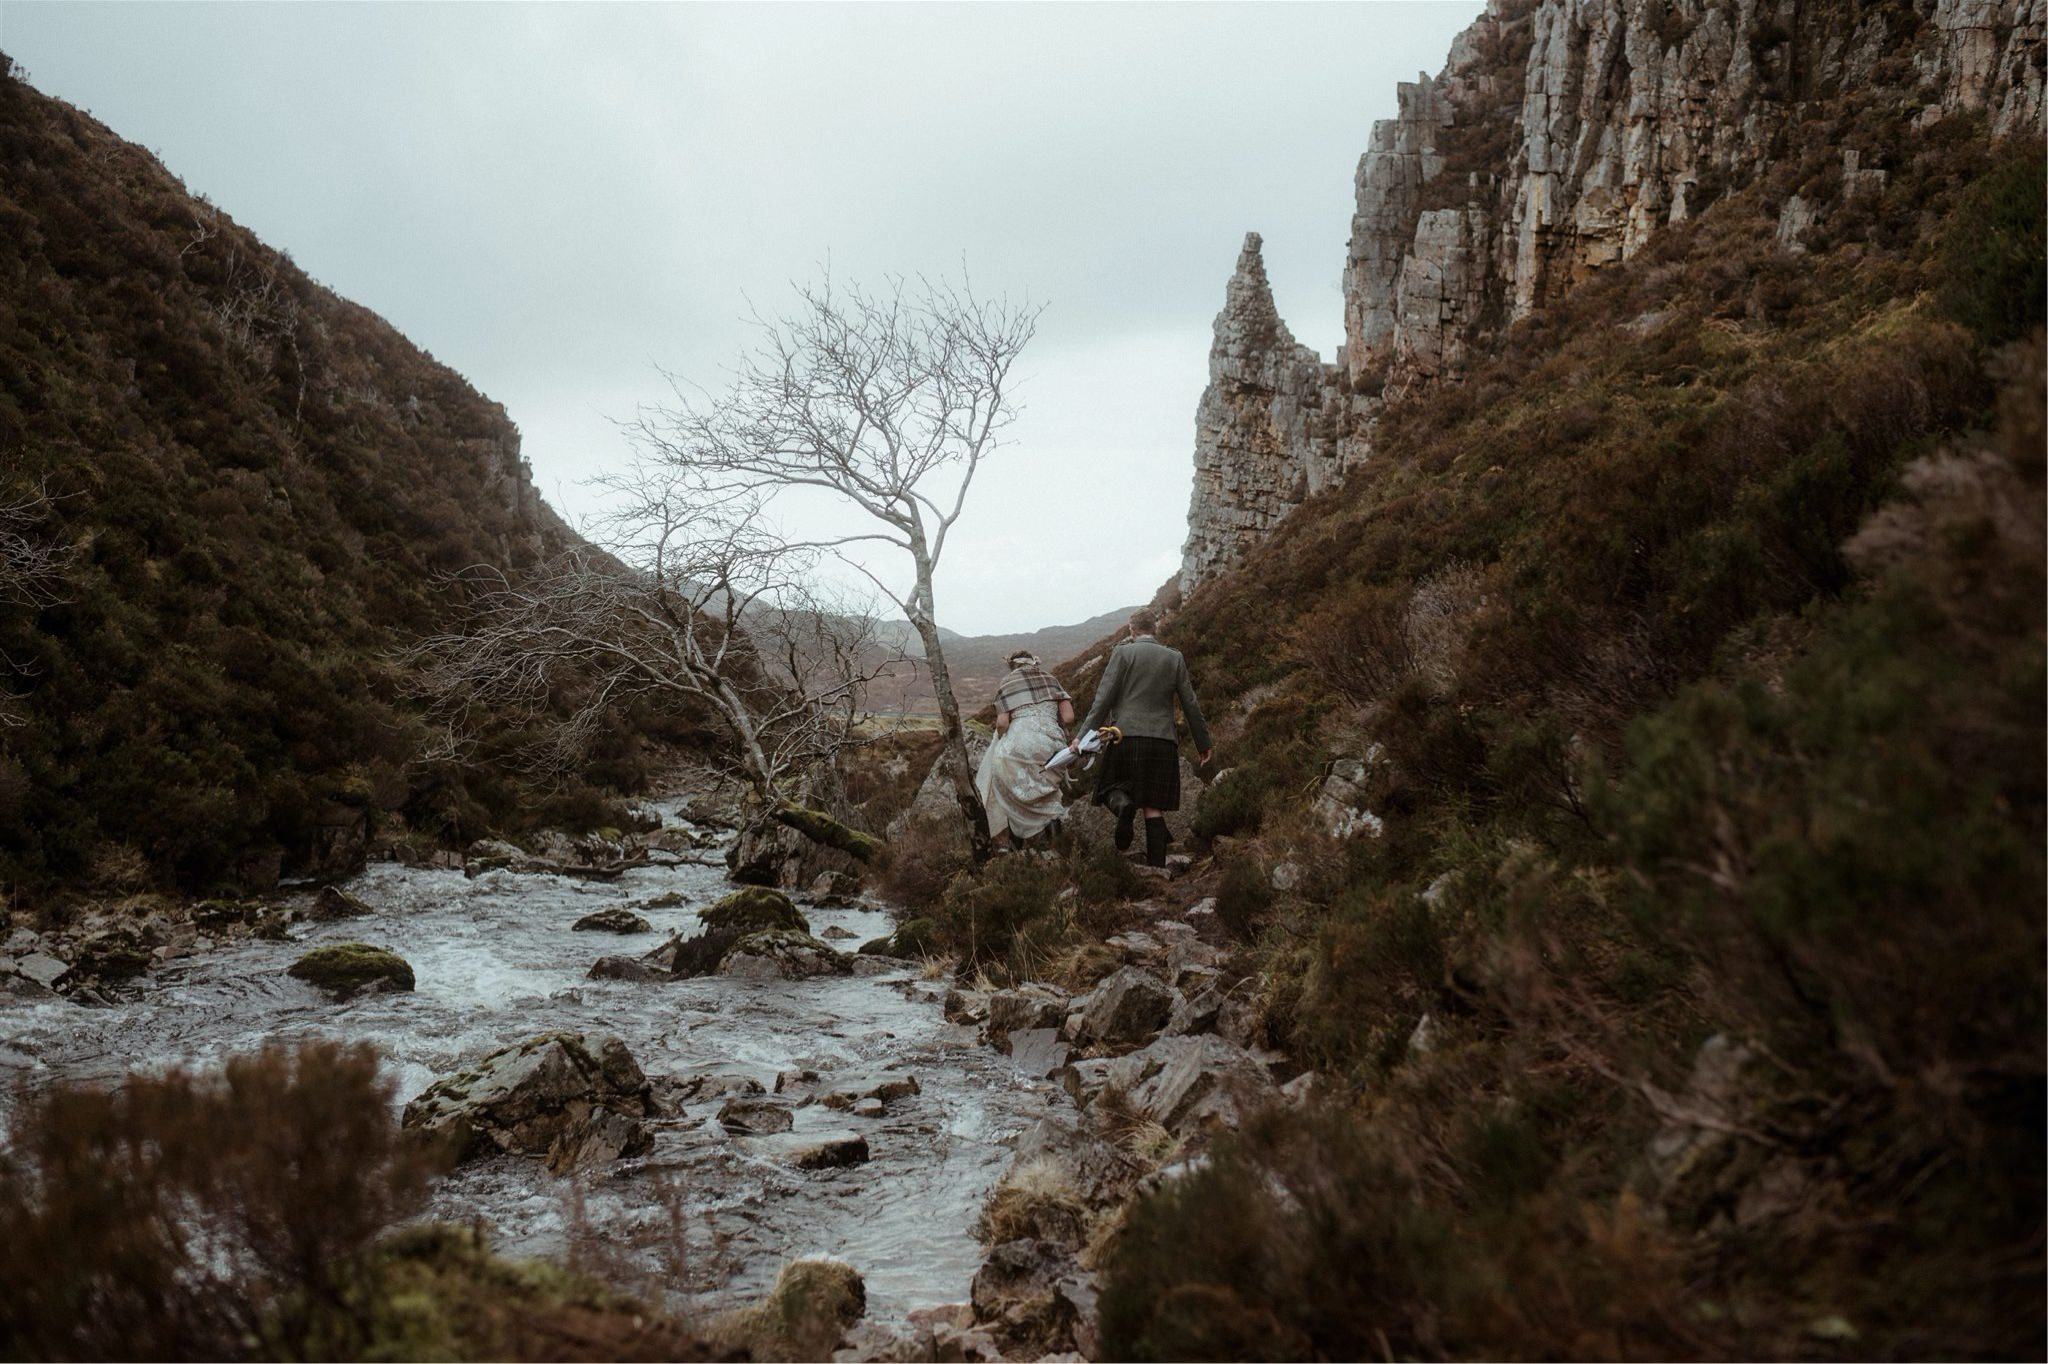 Bride and groom walking through a gorge in Assynt after an elopement wedding in Scotland